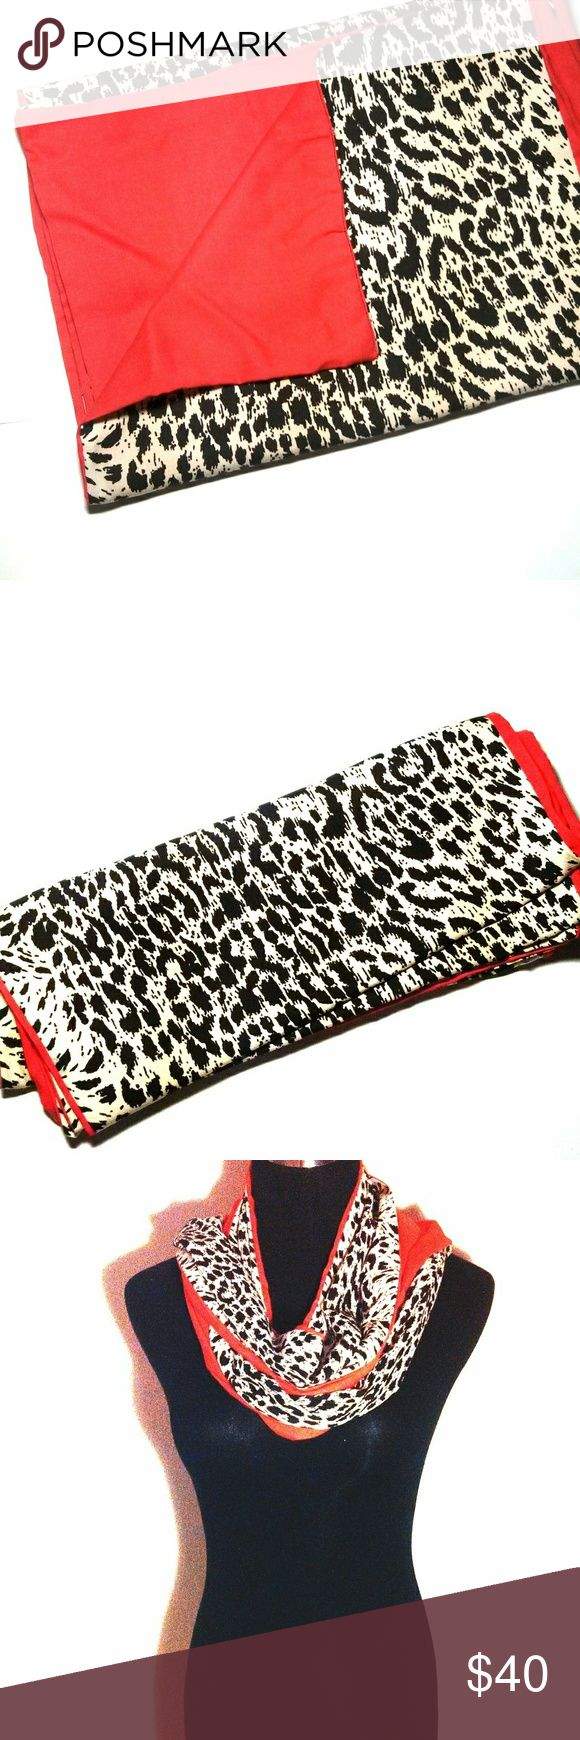 """Handmade double-sided jaguar print and coral scarf Unique double - sided scarf. One side has a black and off - white jaguar like print. The other is a solid deep or hot coral color. 72""""x12"""". Handmade by me. Accessories Scarves & Wraps"""